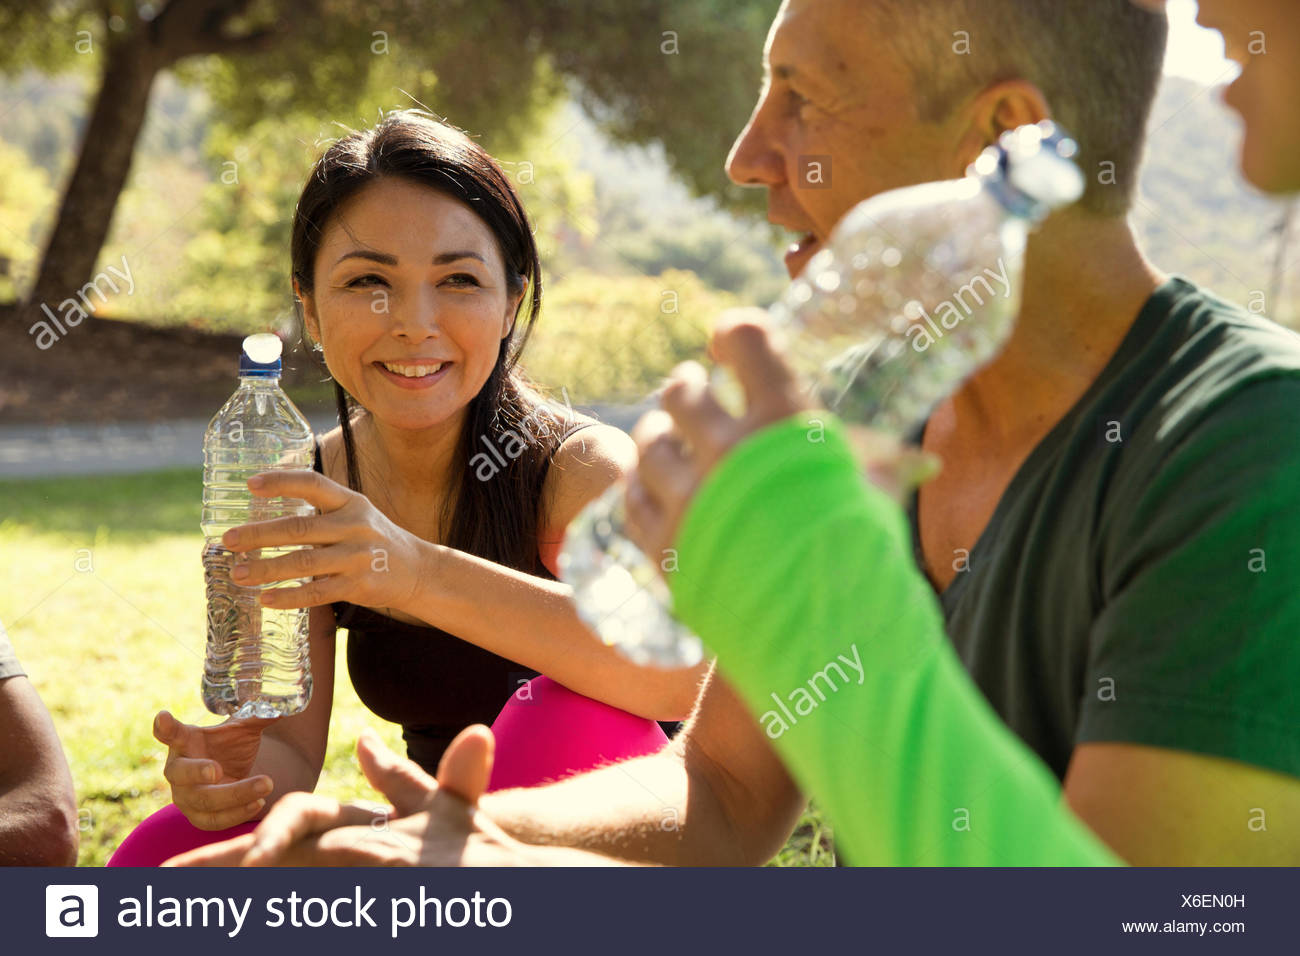 Mature male and female runners taking a water break in park - Stock Image